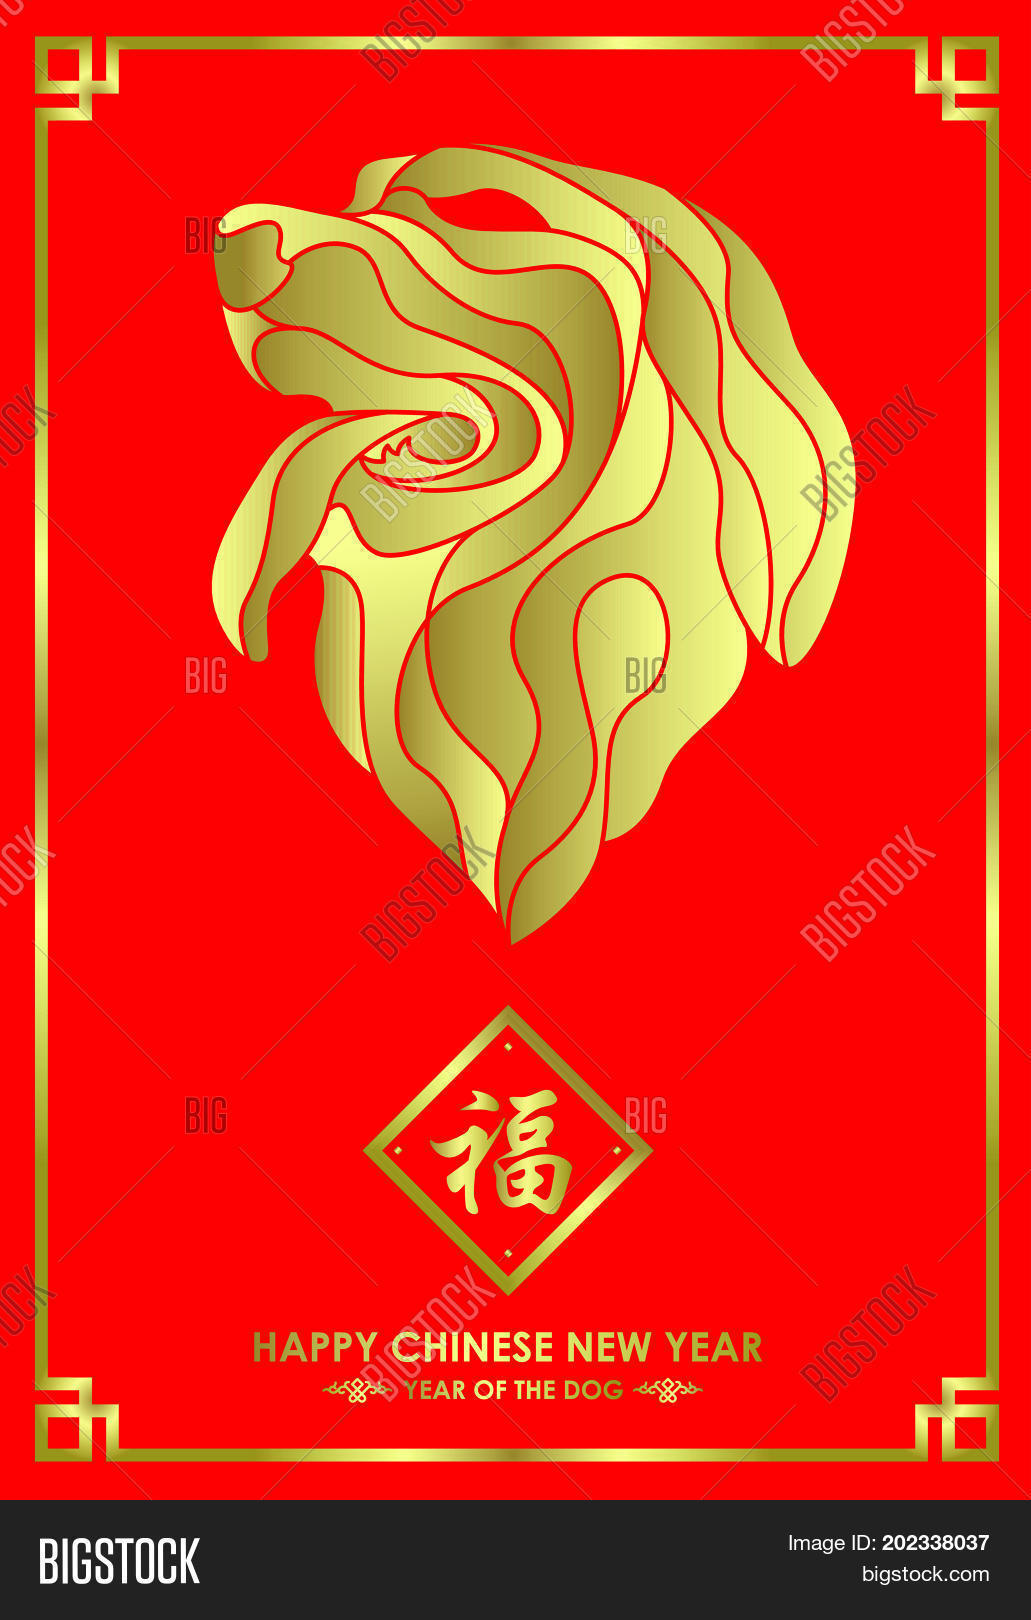 Happy chinese new year year dog vector photo bigstock happy chinese new year and year of dog card with gold dog zodiac abstract on red kristyandbryce Choice Image